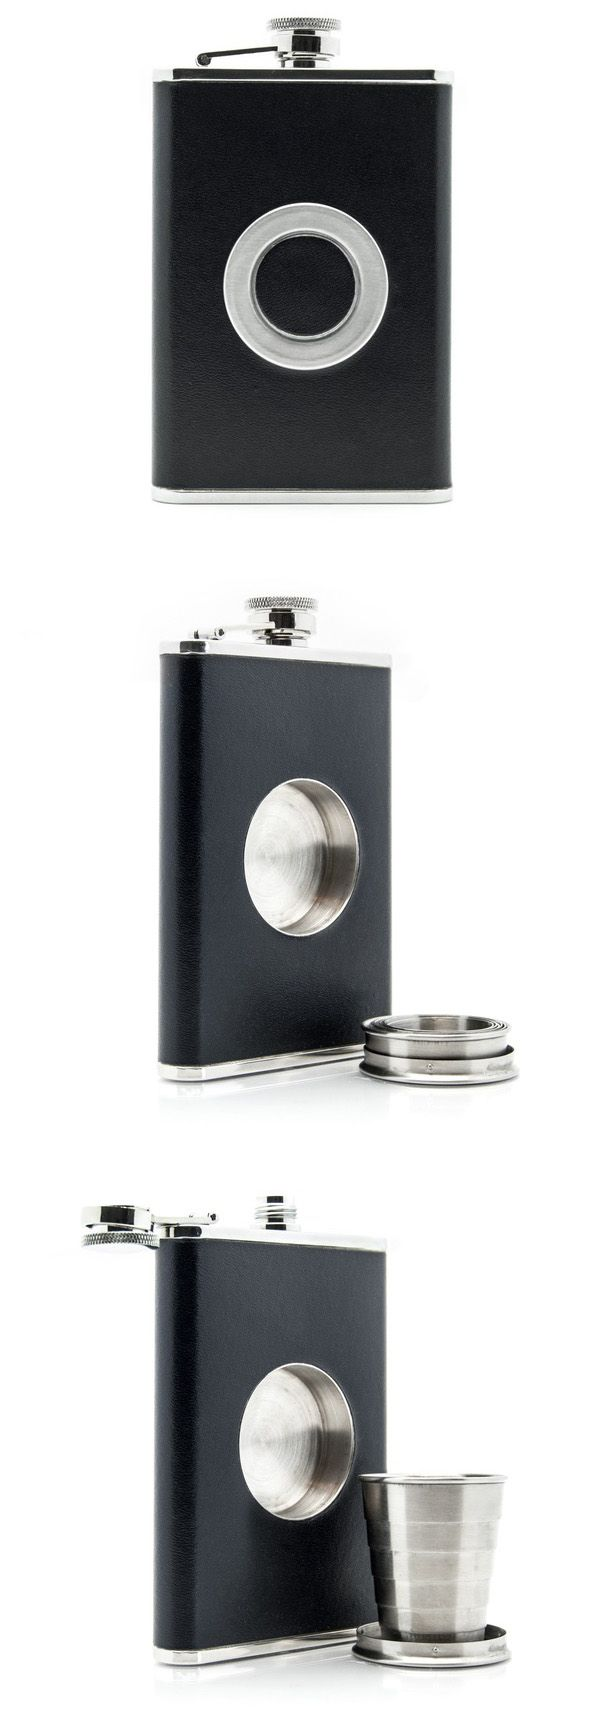 Flask with shot glass - I don't drink but that's super cool.